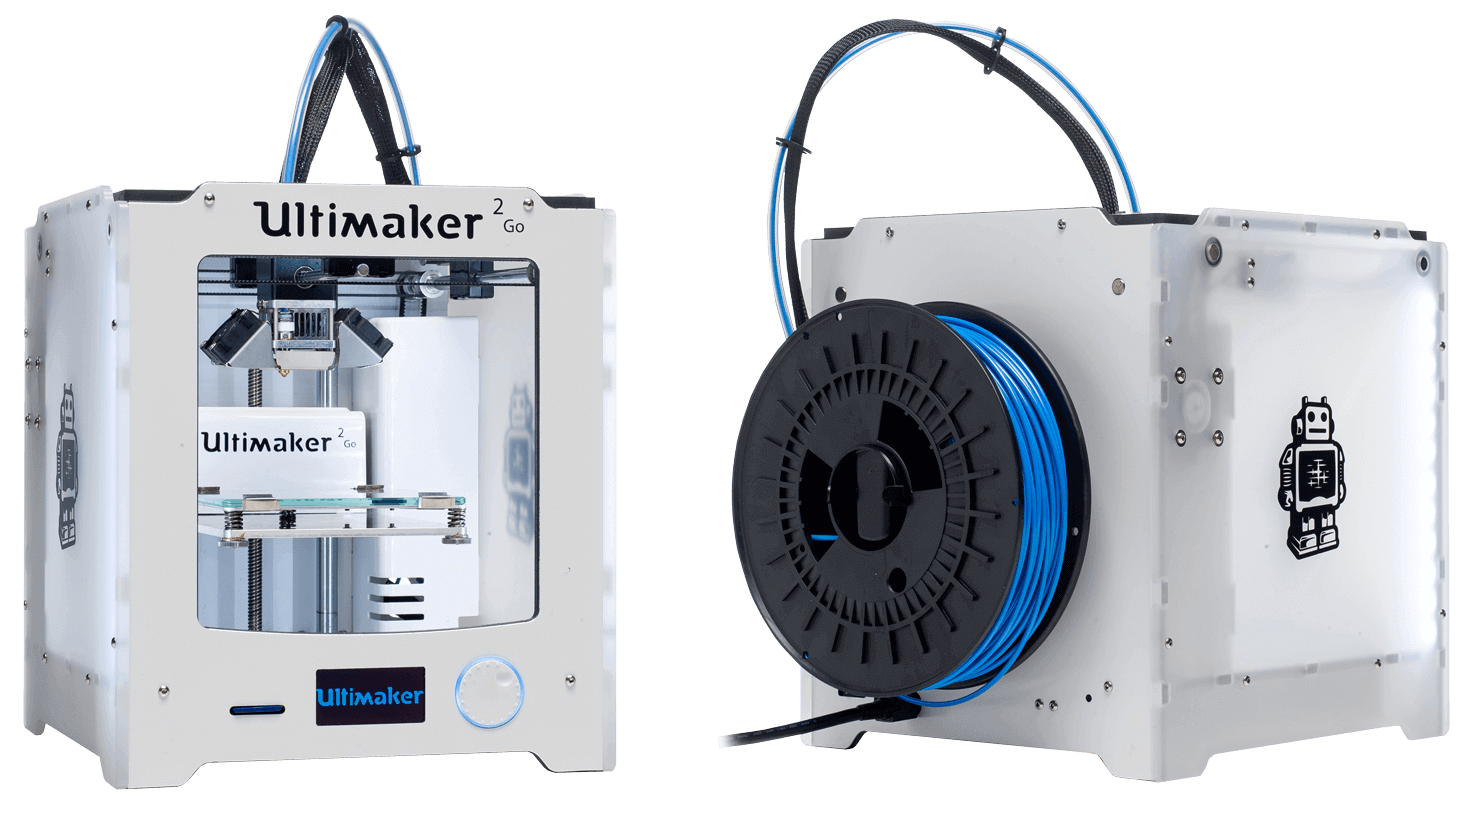 Ultimaker 2 Go: First Impression | All3DP